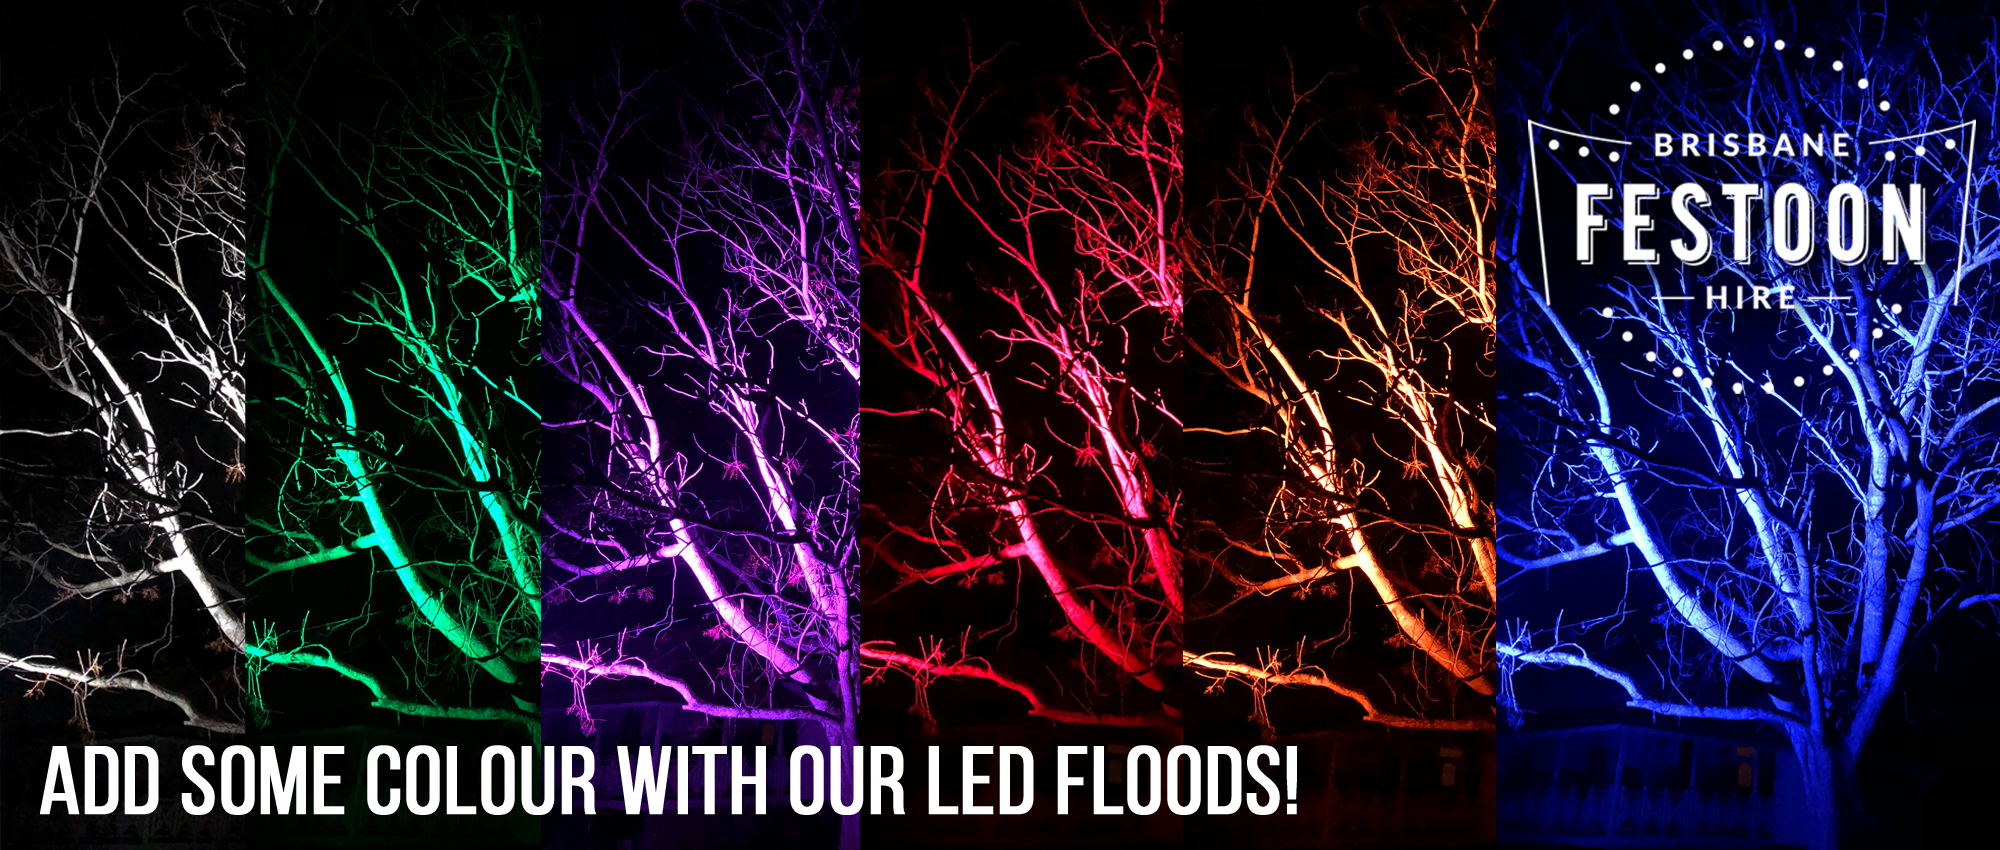 Brisbane Festoon Hire - LED Flood Hire.jpg